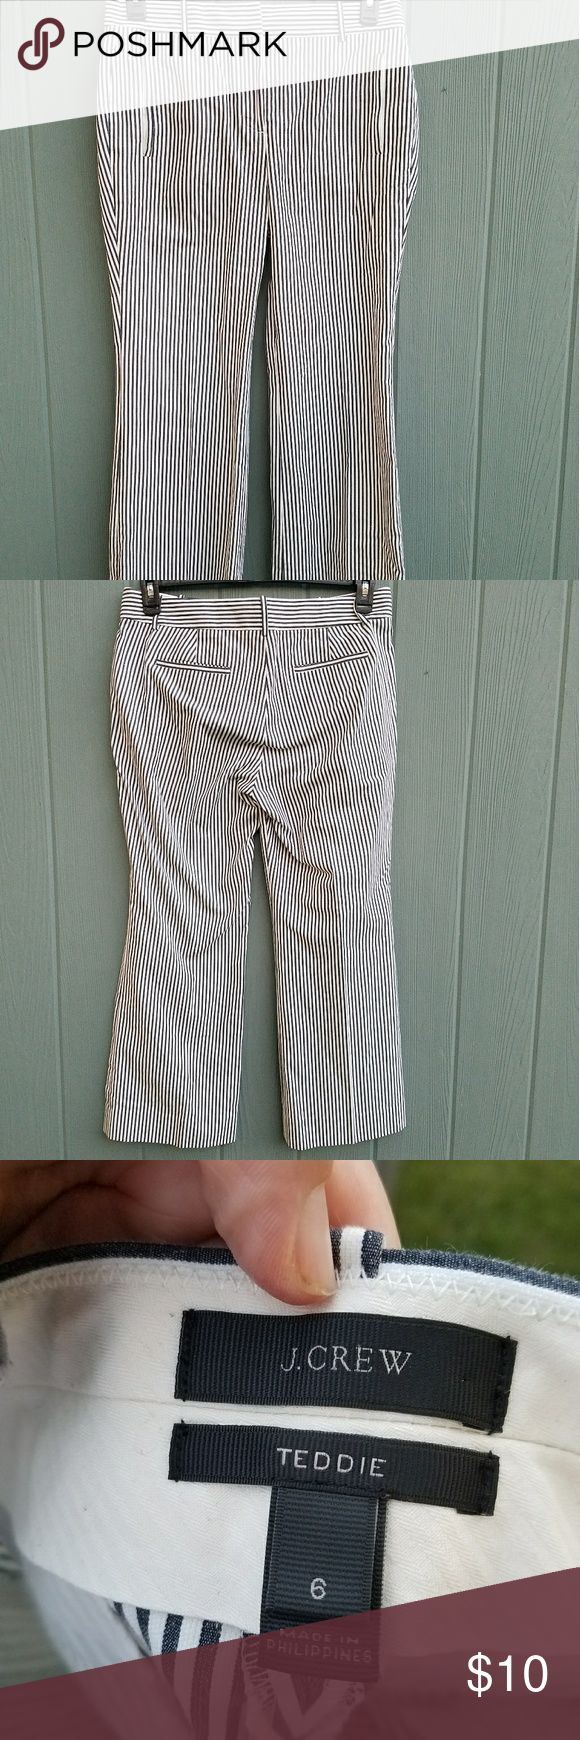 """J. Crew Teddie Seercucker Crop Pants Excellent condition.  Size 6. 25.5"""" inseam   Meet Teddie: Our new favorite pant is slightly cropped with a cool kickout hem and polished front pockets that are finished with hidden zippers (a little detail we really love). This one is crafted in classic seersucker, the fabric that's practically a synonym for summer. J. Crew Pants Ankle & Cropped"""